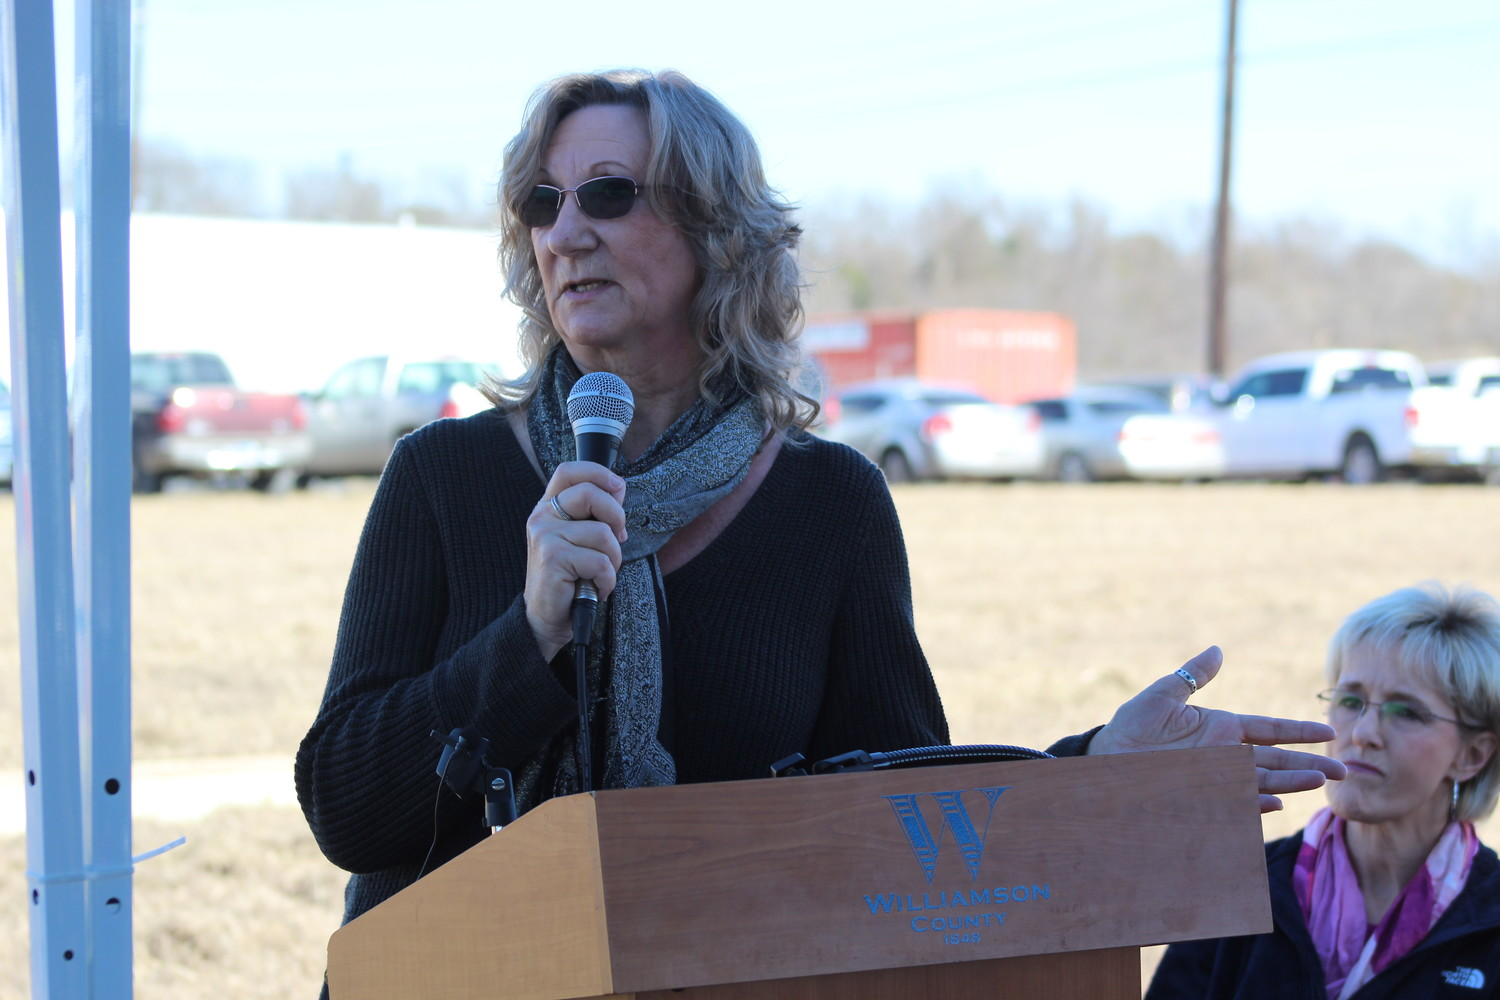 Williamson County Regional Animal Shelter Executive Director Cheryl Schneider speaks at the groundbreaking ceremony for the Wilco Regional Animal Shelter expansion project, Wednesday, Jan. 24.